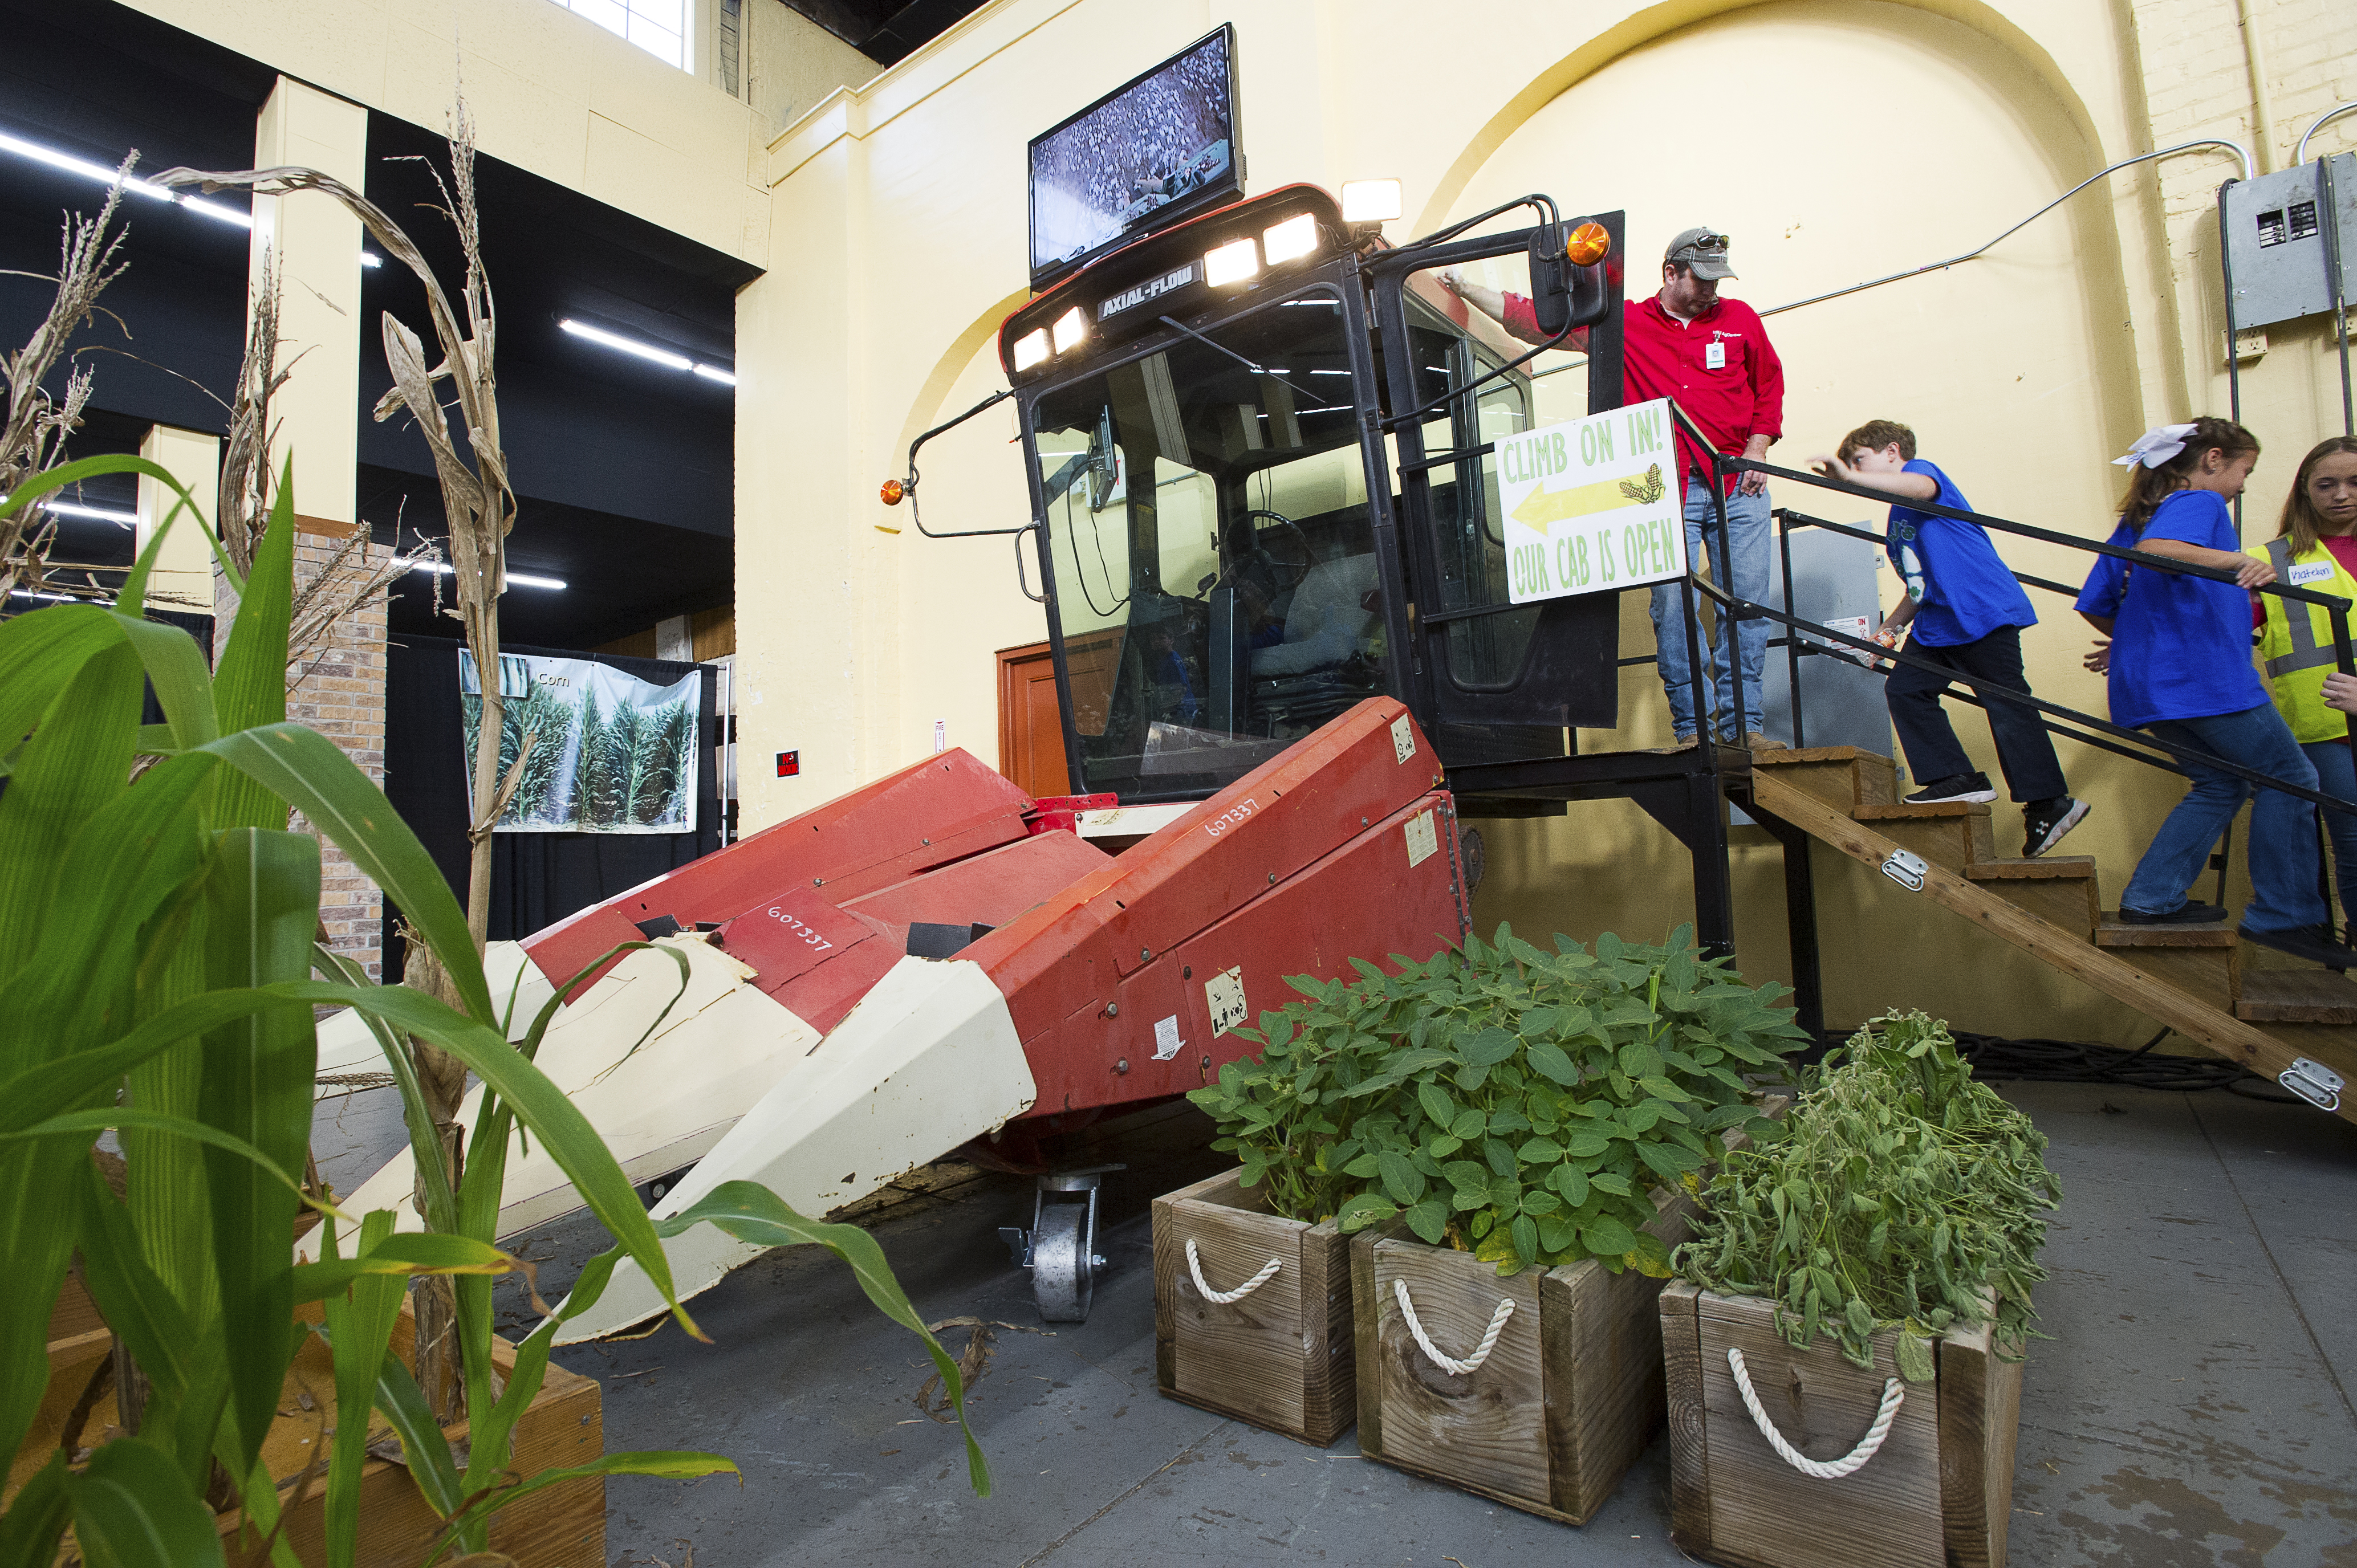 AgMagic to teach about food, fiber at state fair